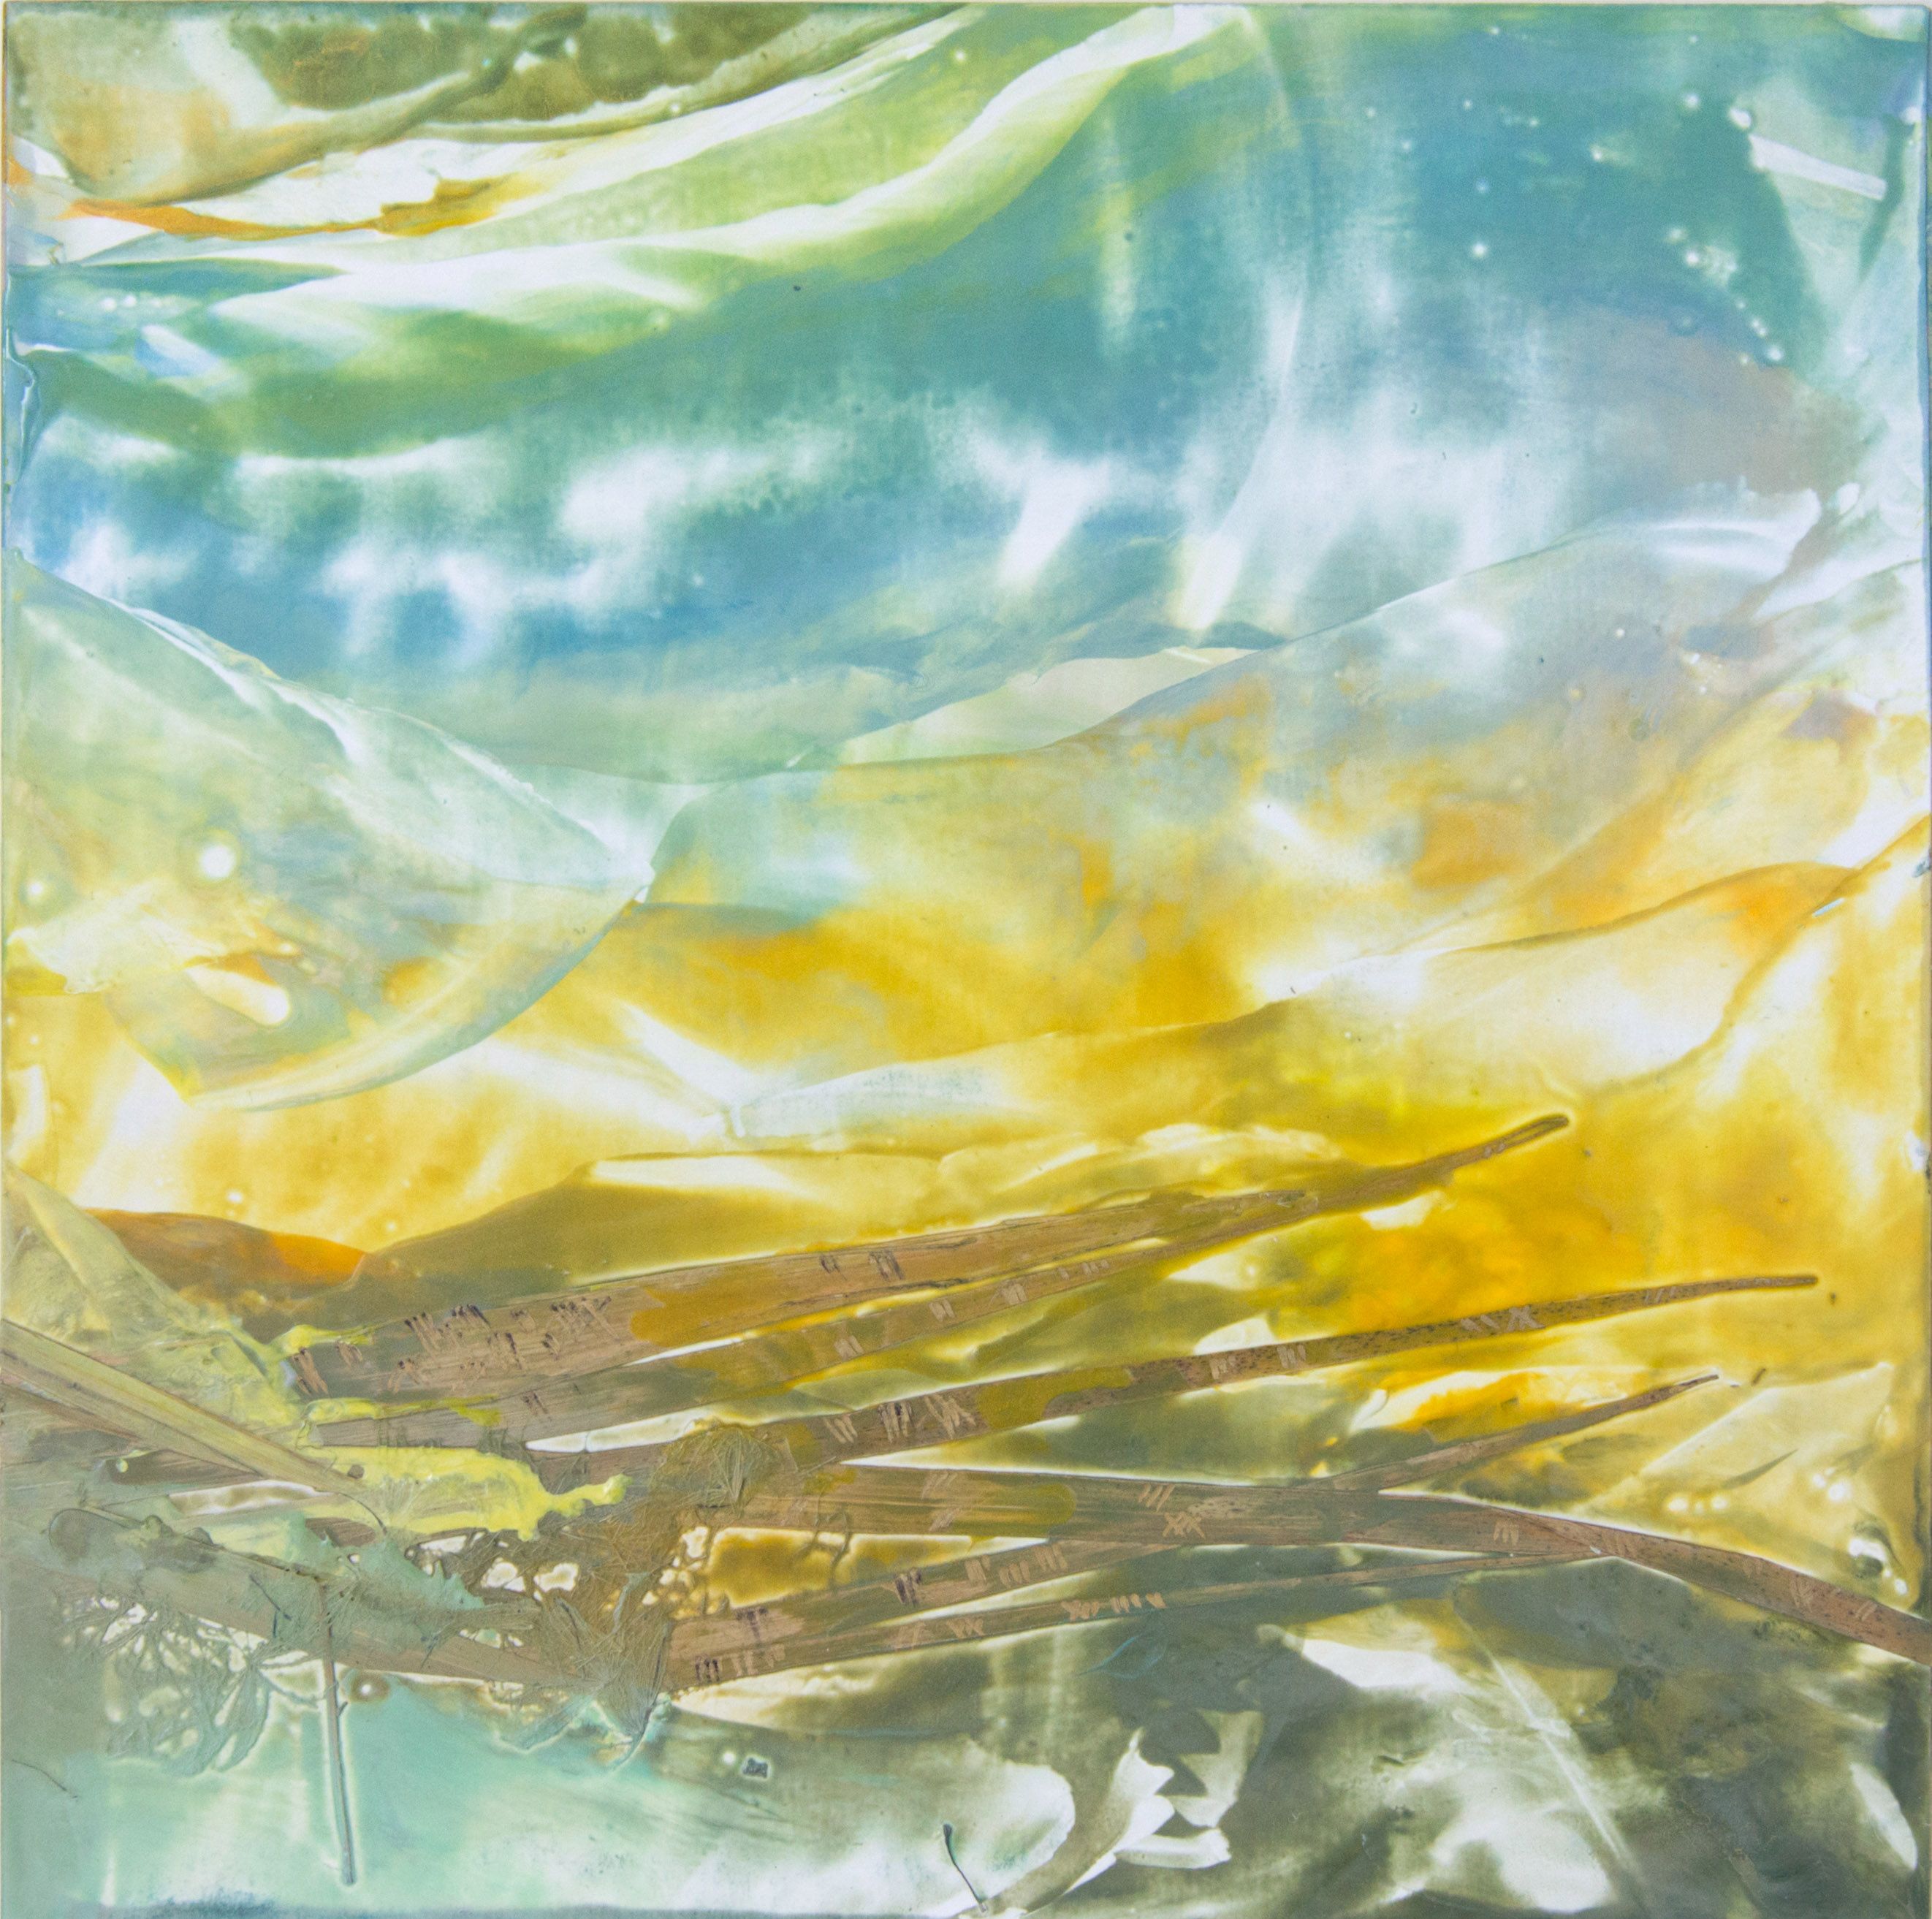 Coastline I (River to Sea series), abstract encaustic wax painting by Emily Miller